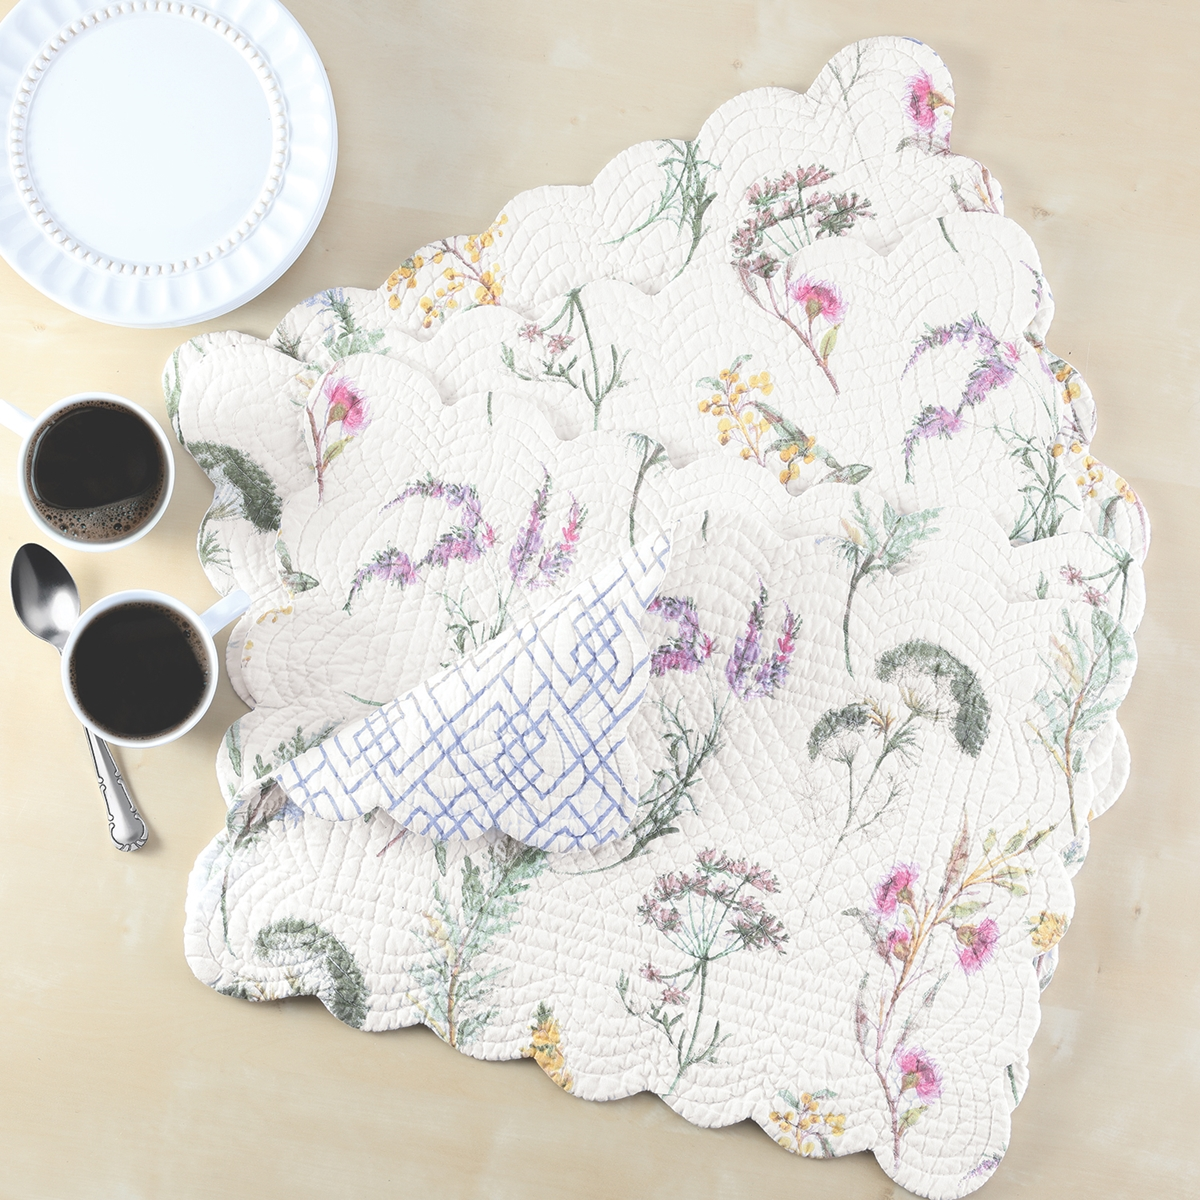 Genevieve Quilted Placemats